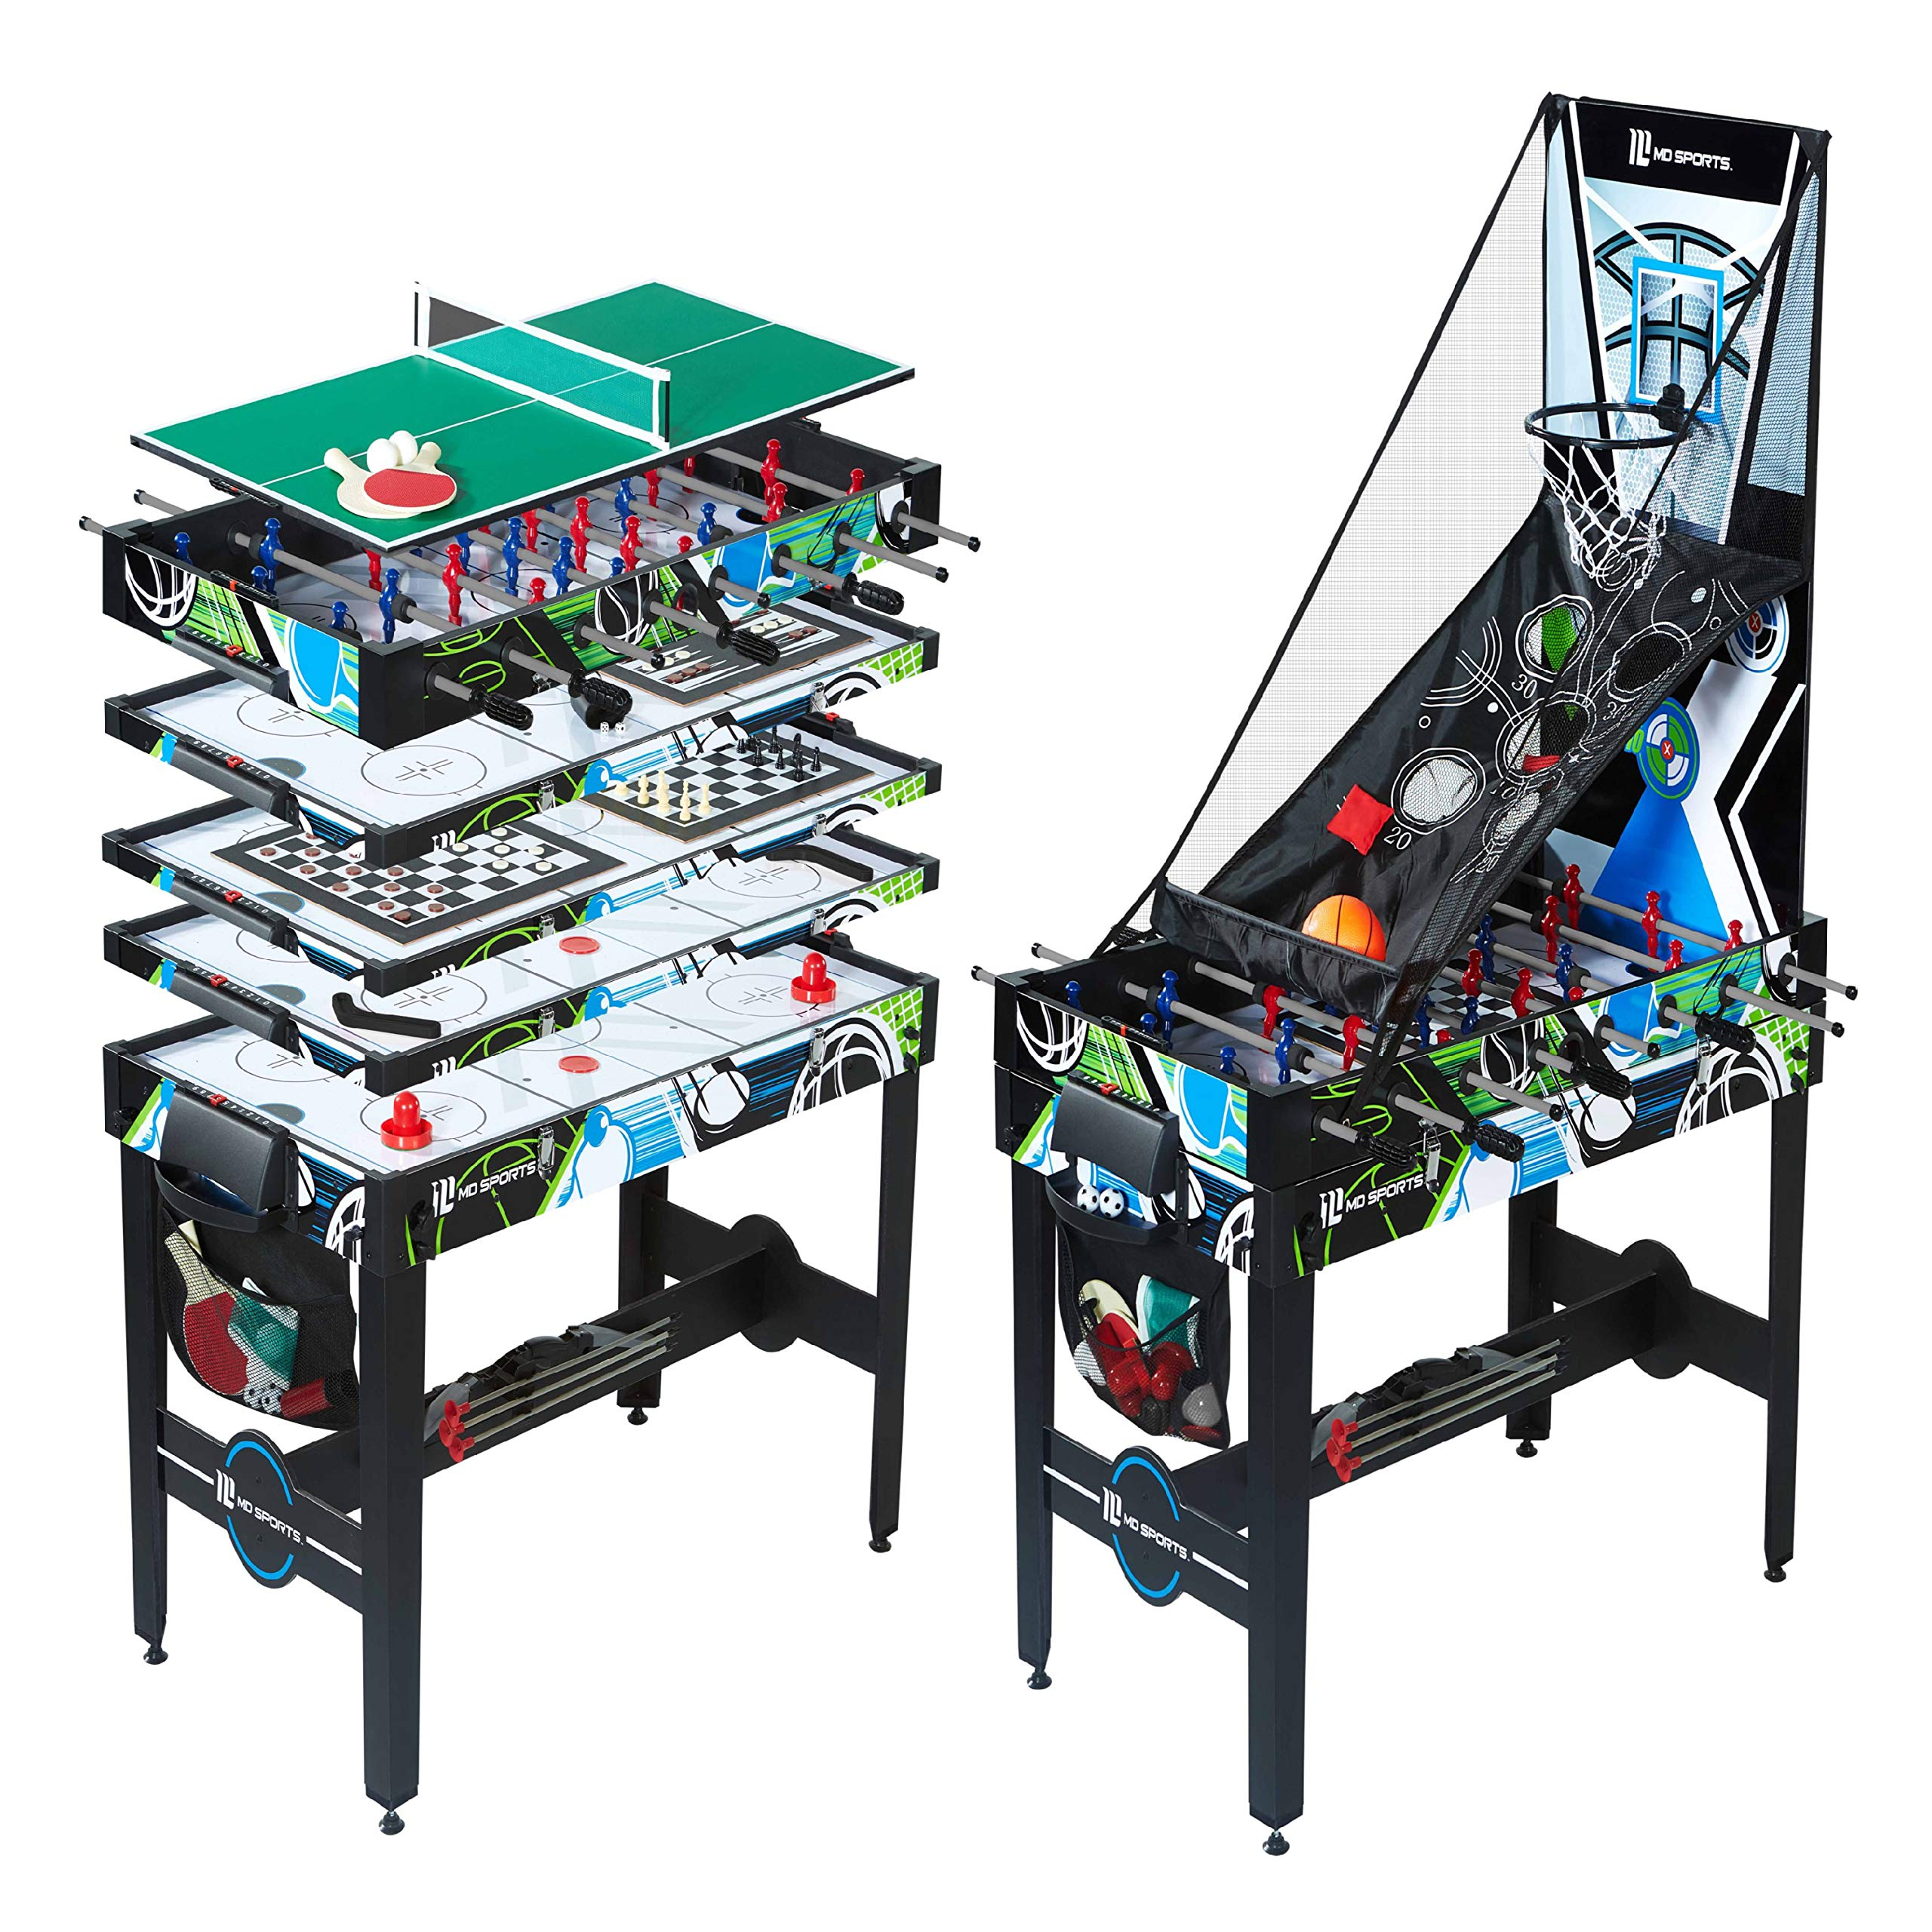 12-in-1 Multi Game Table Set for Adults, Kids, Families - Foosball Tables with 5 Conversion Tops, 4 Board Games, and Multiplayer Sports Games, All-Inclusive - Combination Arcade Games Kit by MD Sports